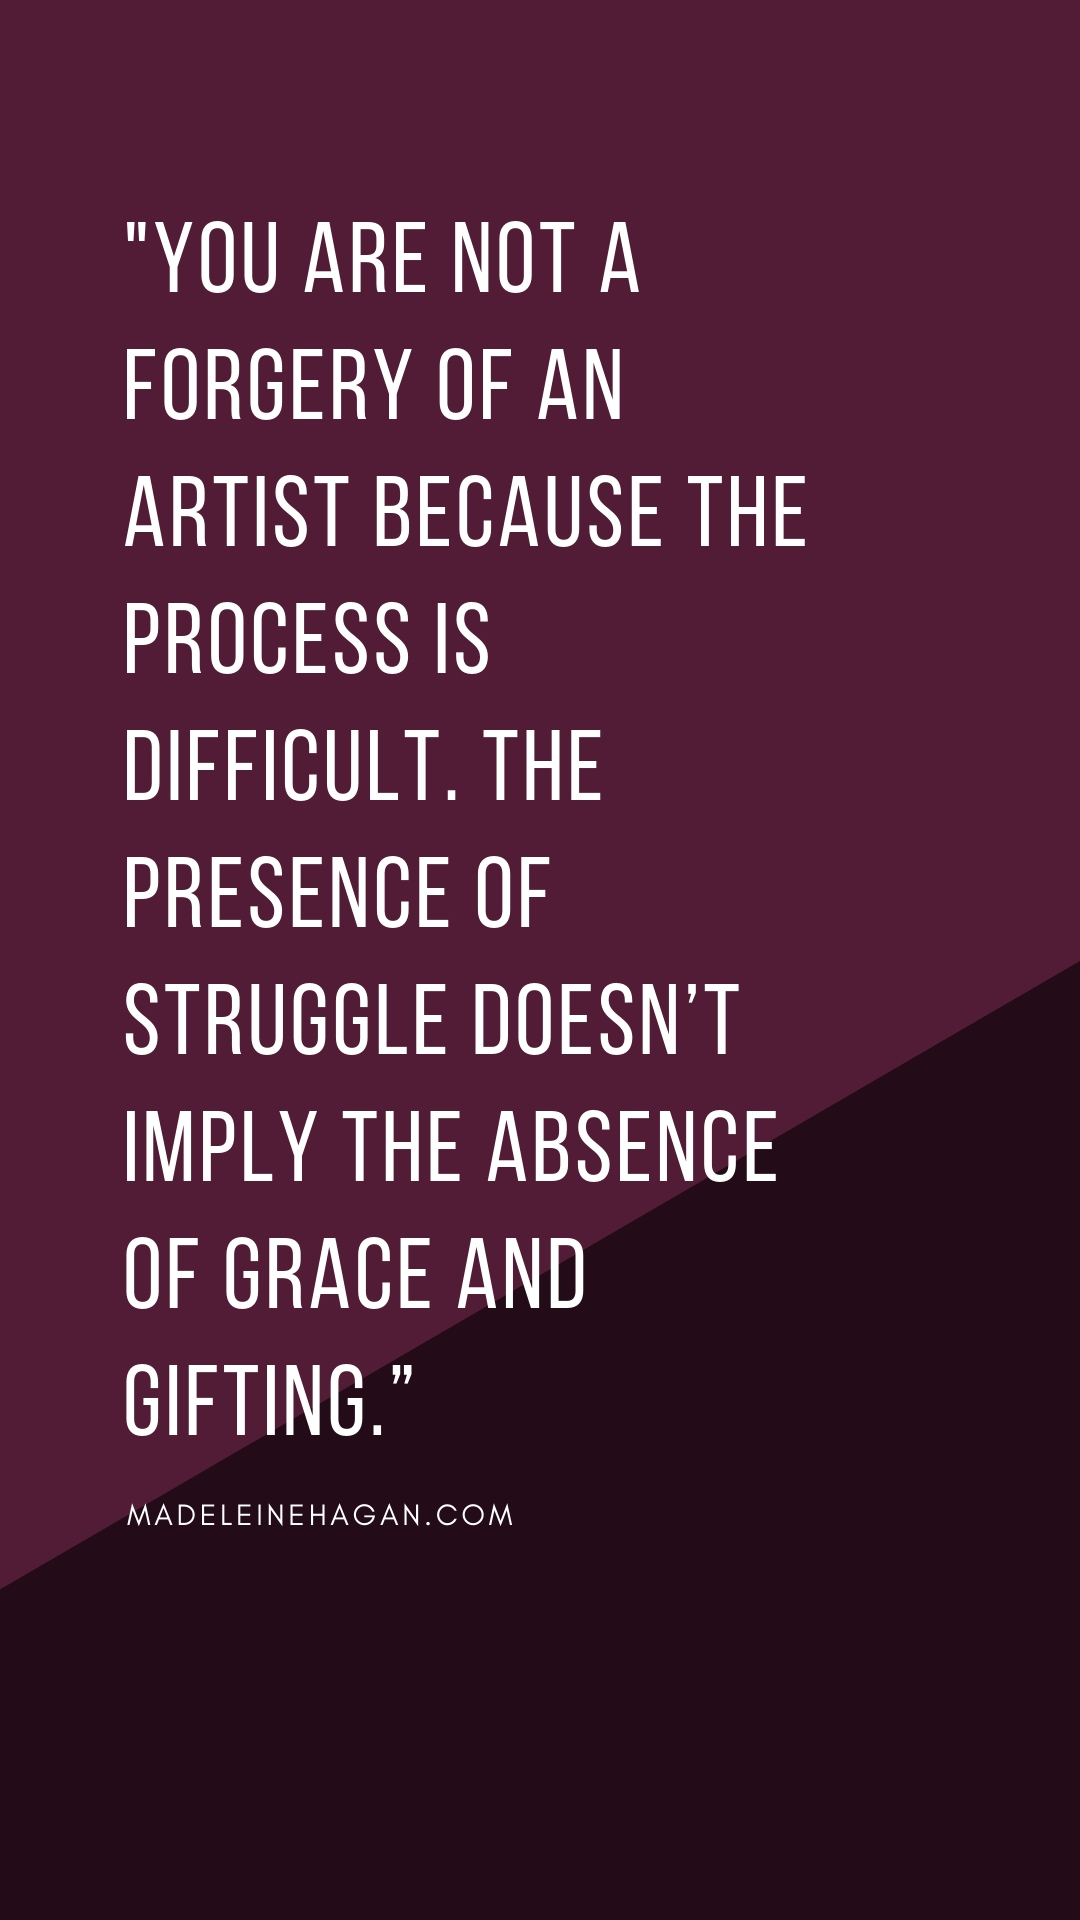 The presence of struggle doesn't imply the absence of grace and gifting.